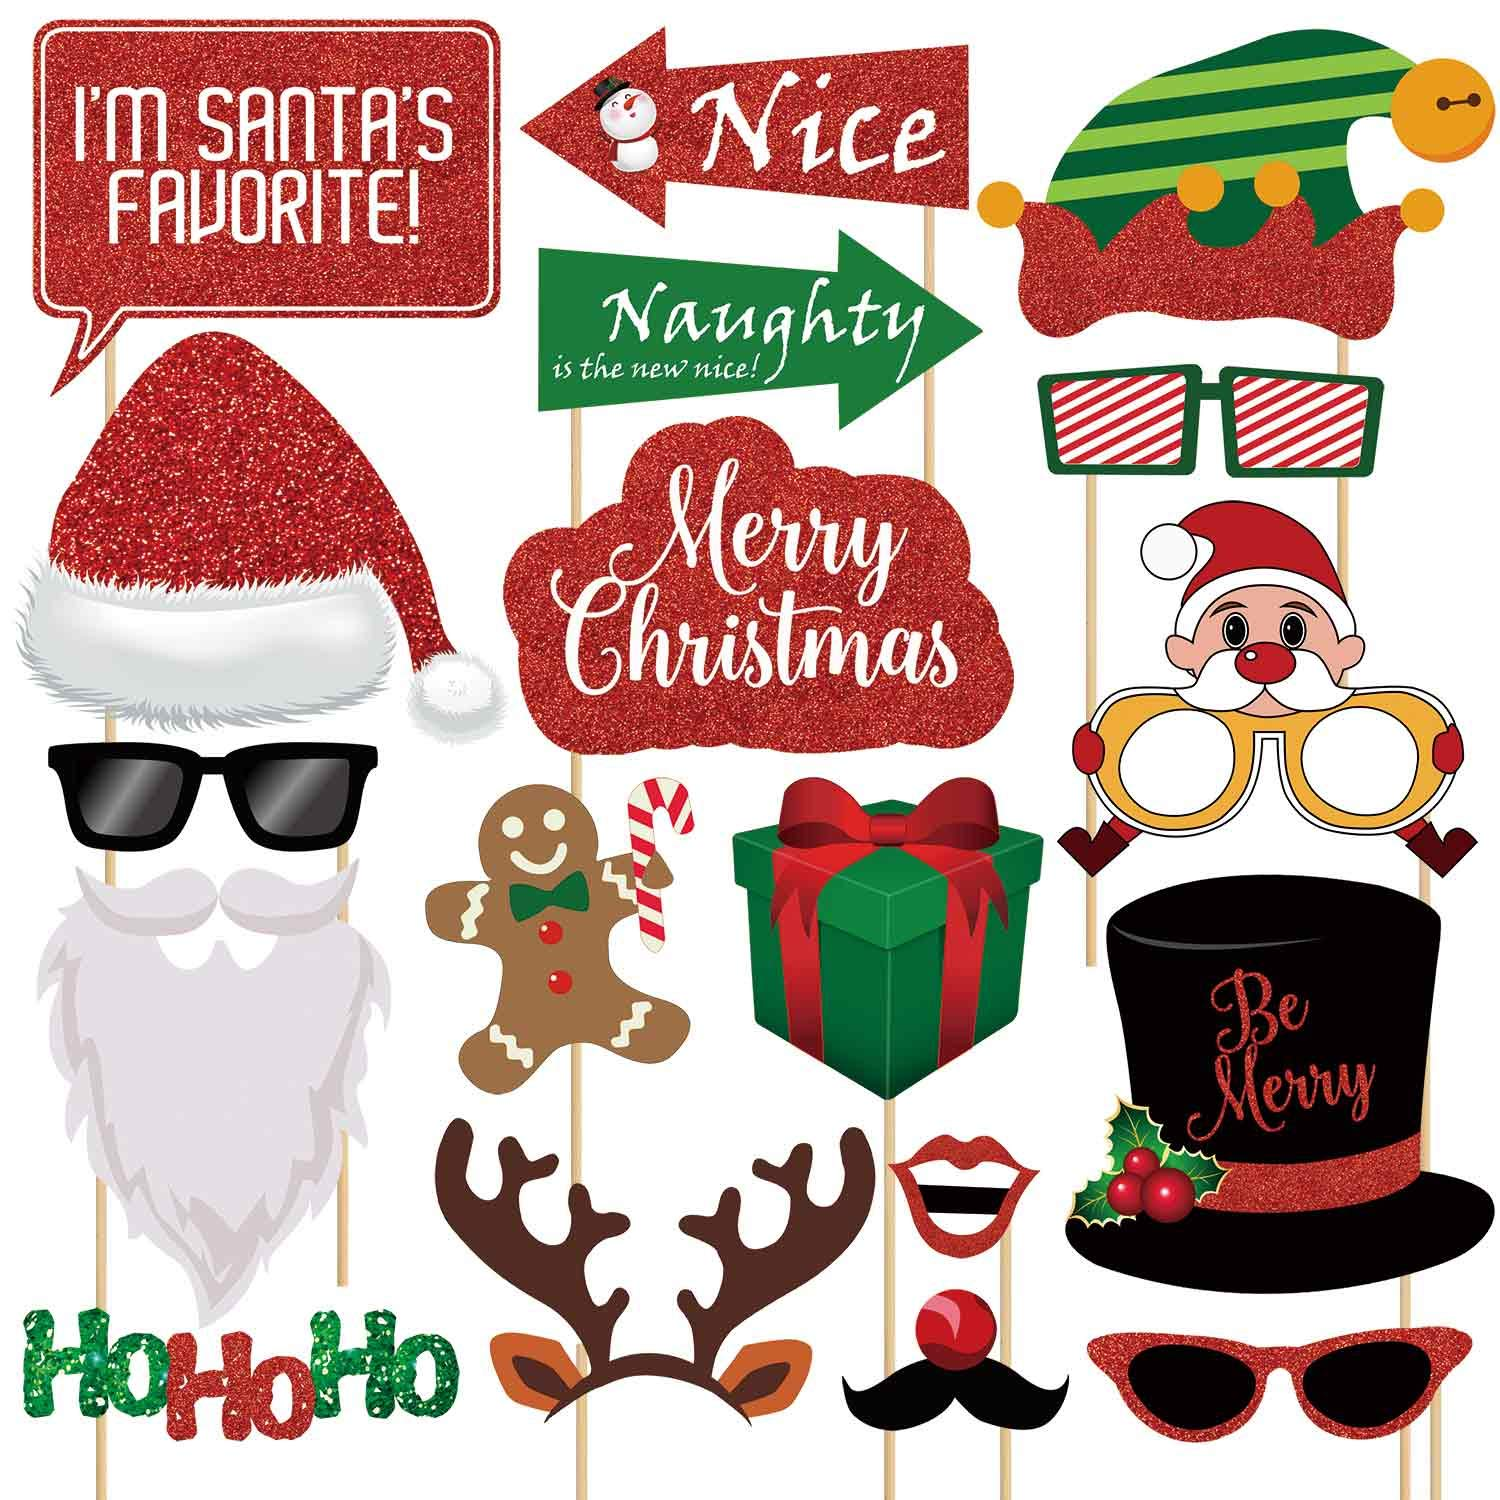 XMCOSOCS Glitter Christmas Photo Booth Props Kit - 25 Count Large Photography Party Decorations Gifts, Fun Santa Elfie Selfie Posing Signs DIY Craft Backdrop Accessories for Birthday New Year Holiday